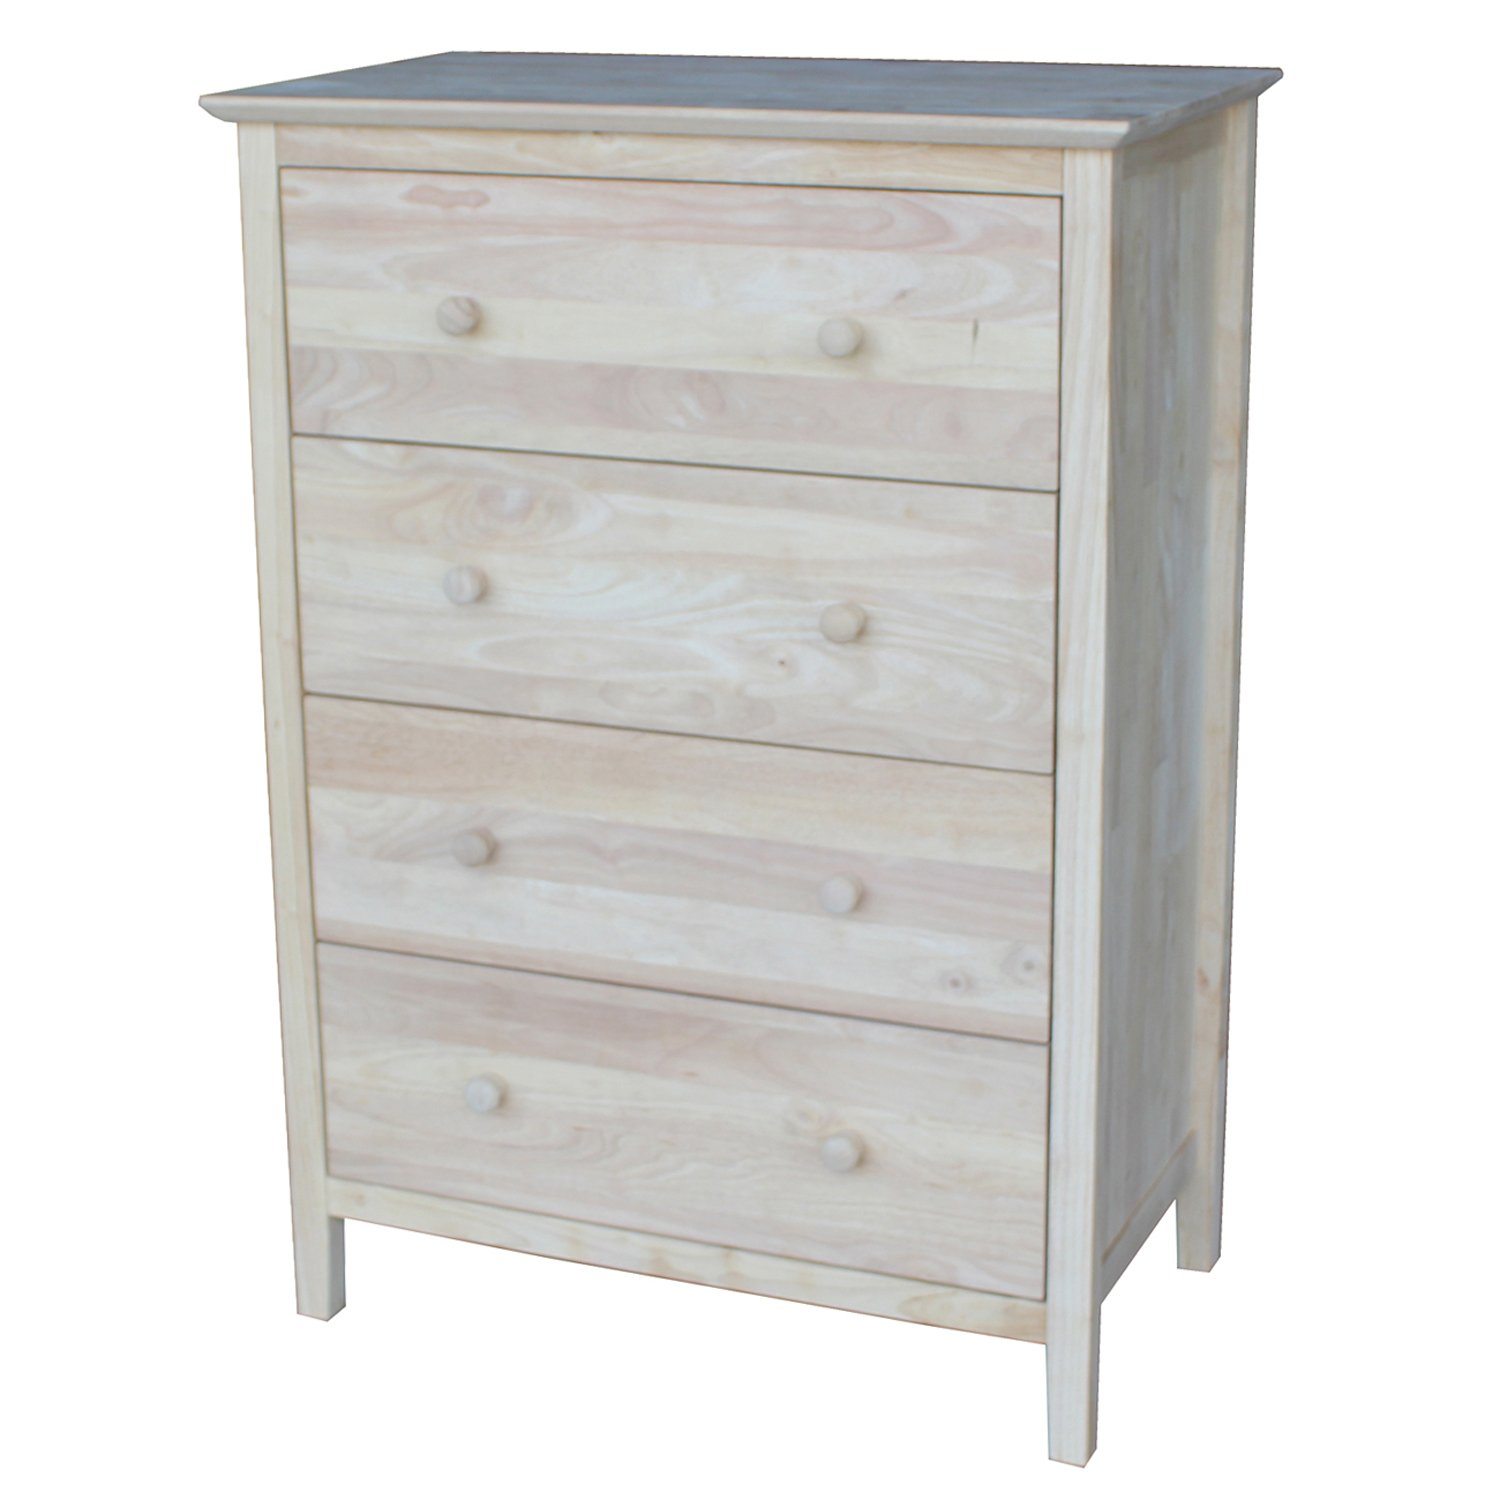 International Concepts Chest with 4 Drawers, Unfinished by International Concepts